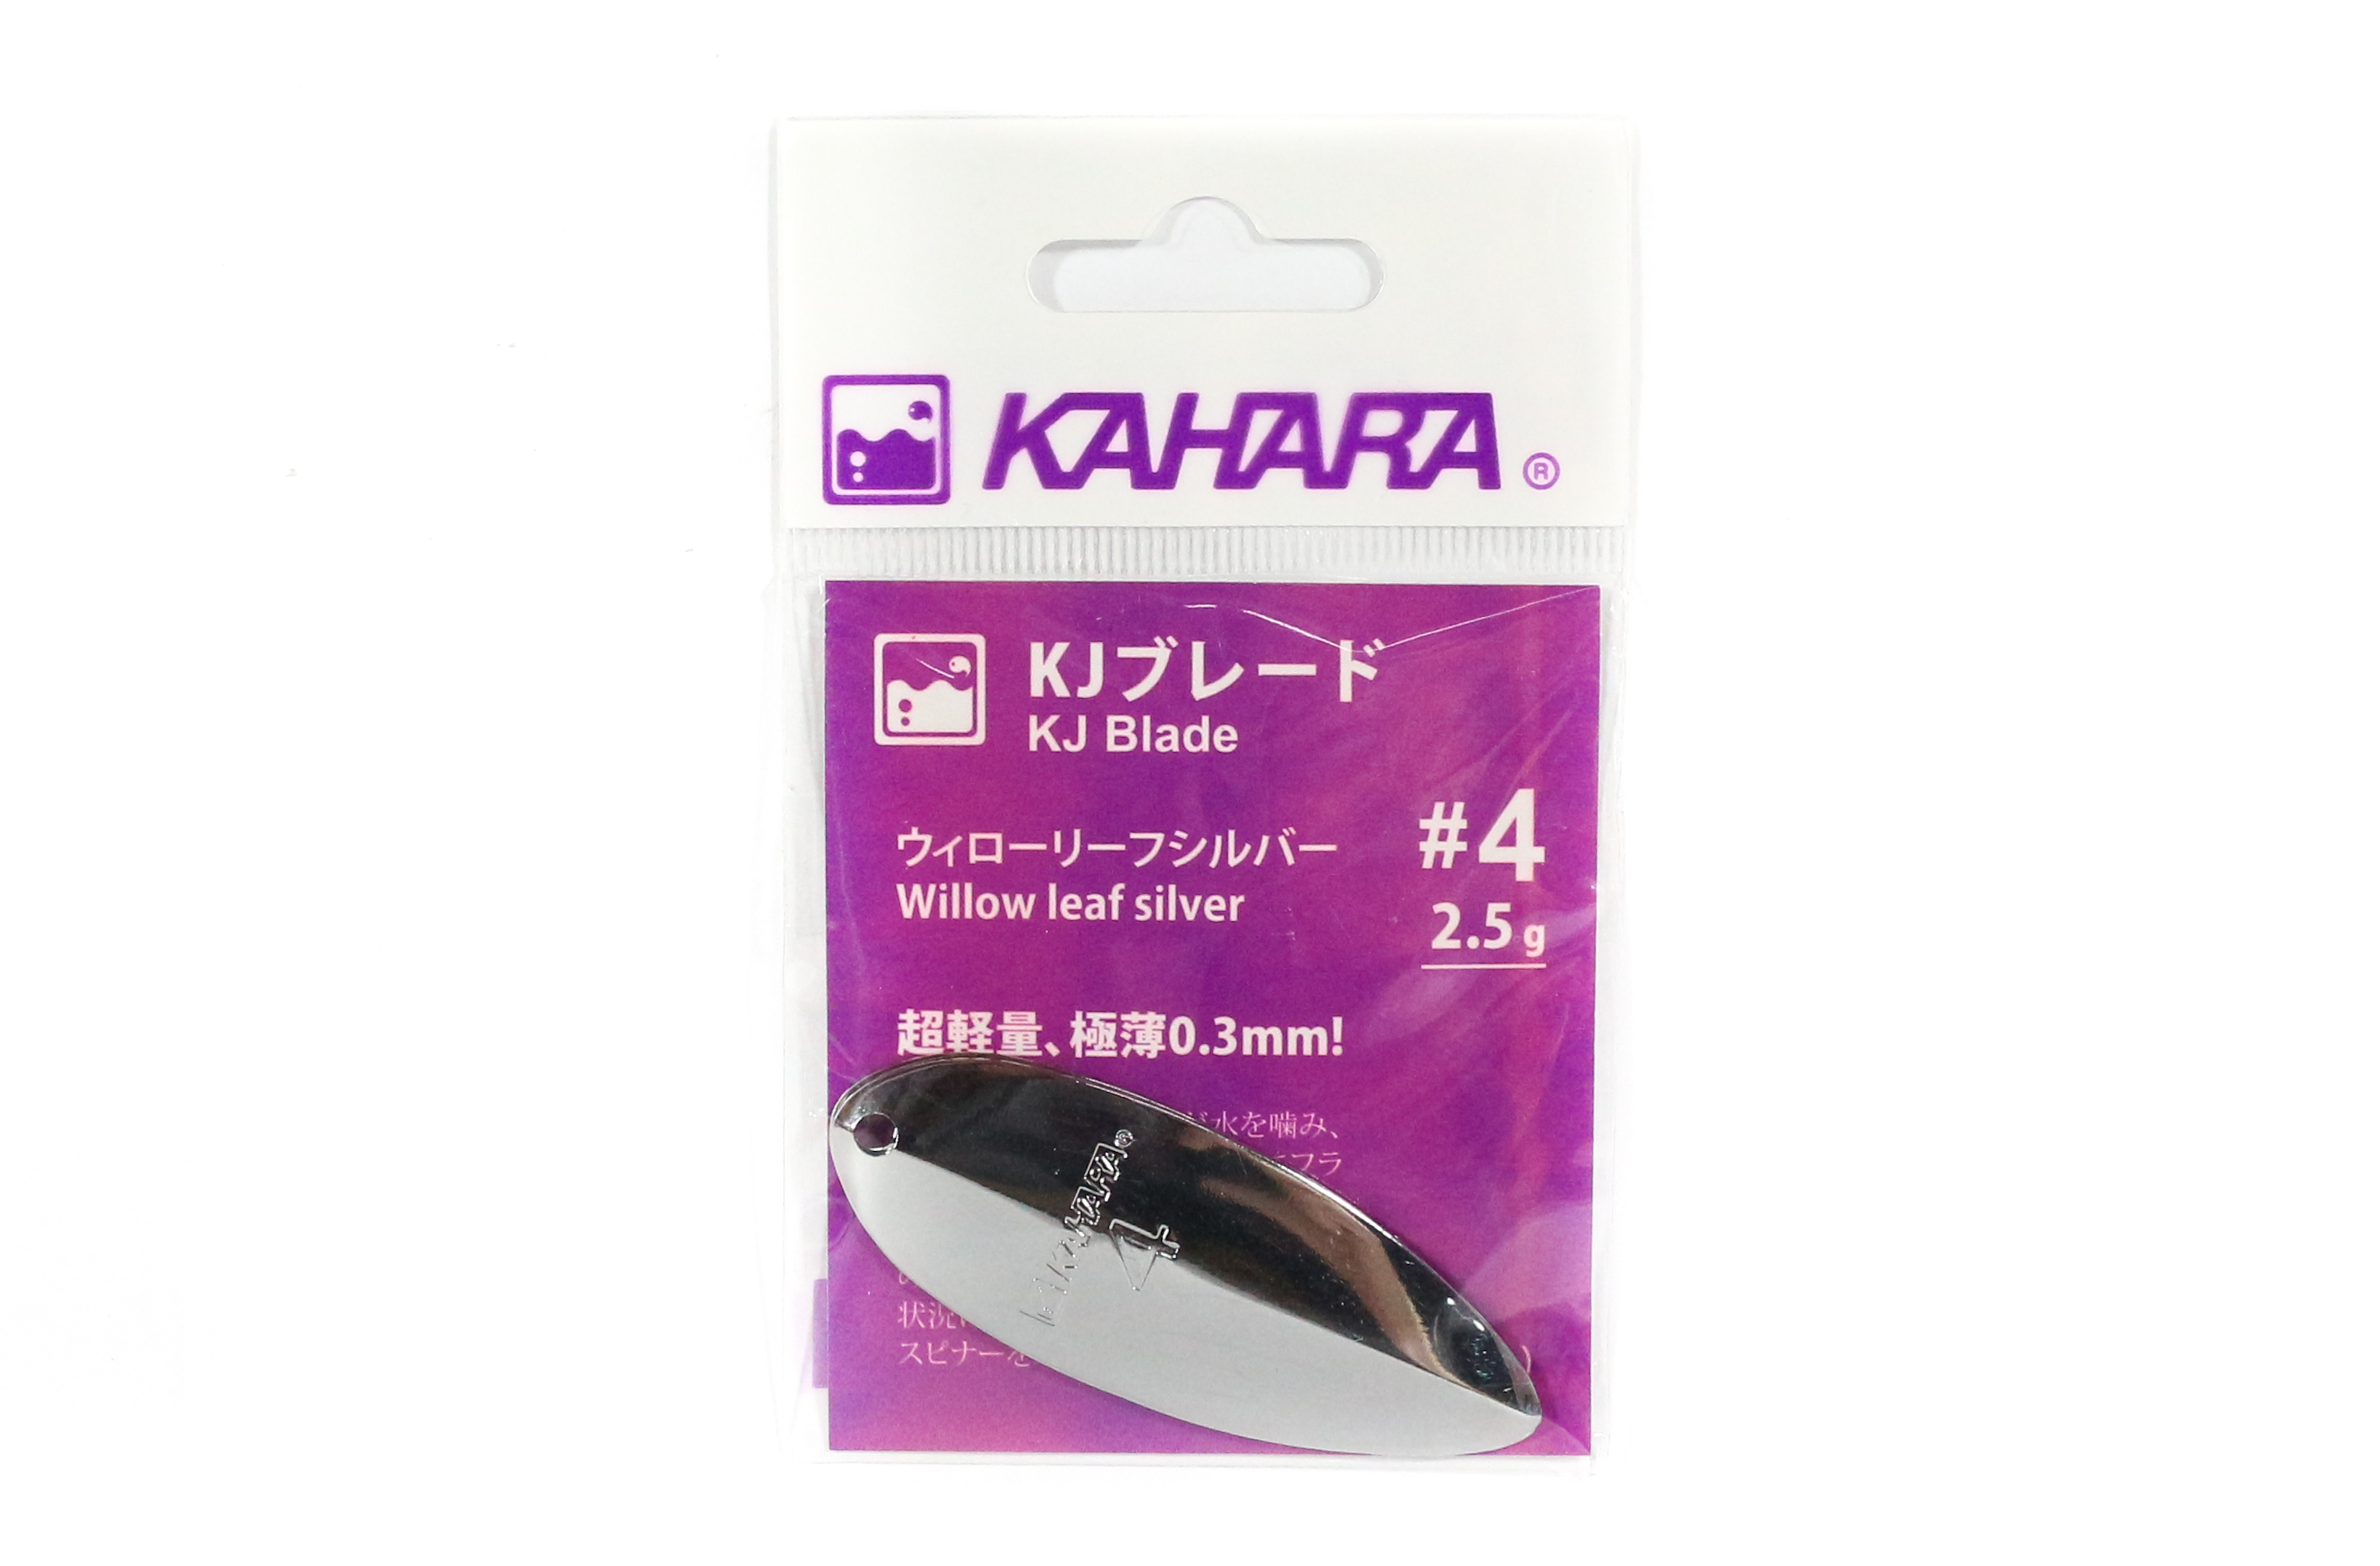 Kahara Lure Leaf Willow Blade Silver Size 4 (3363)